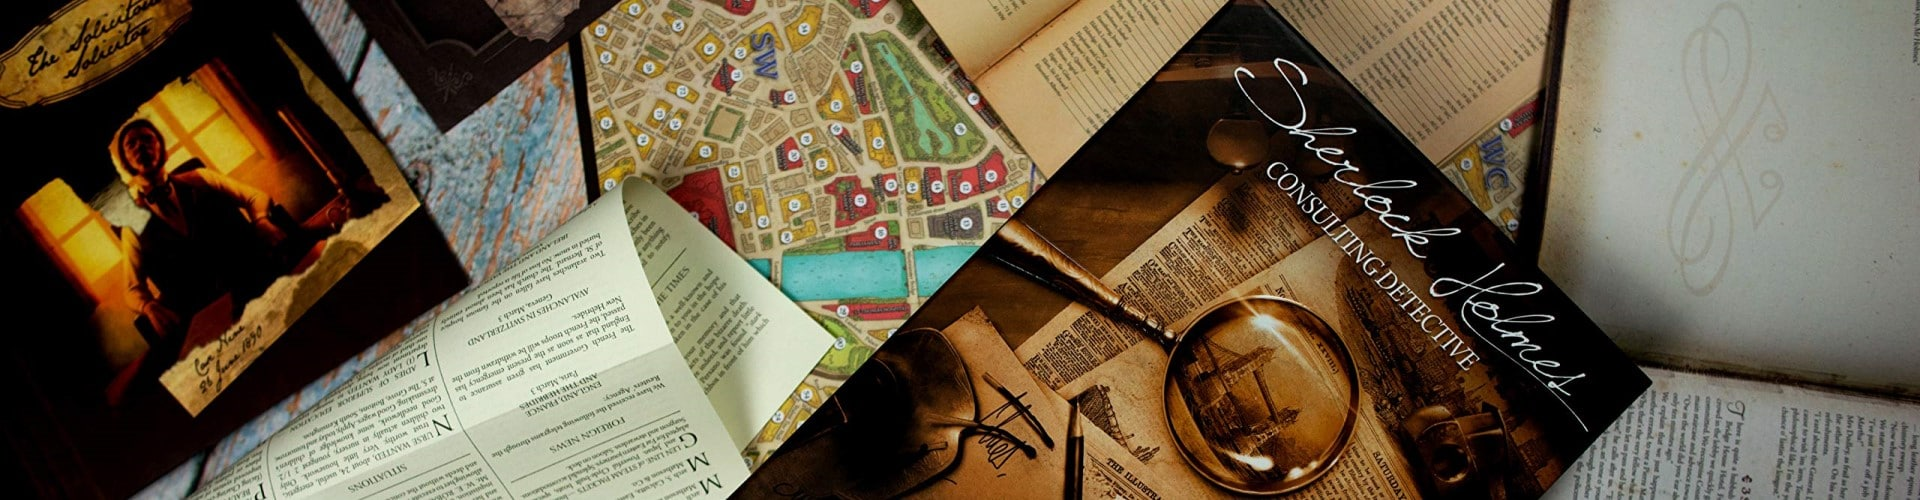 Best Mystery Board Games Selection